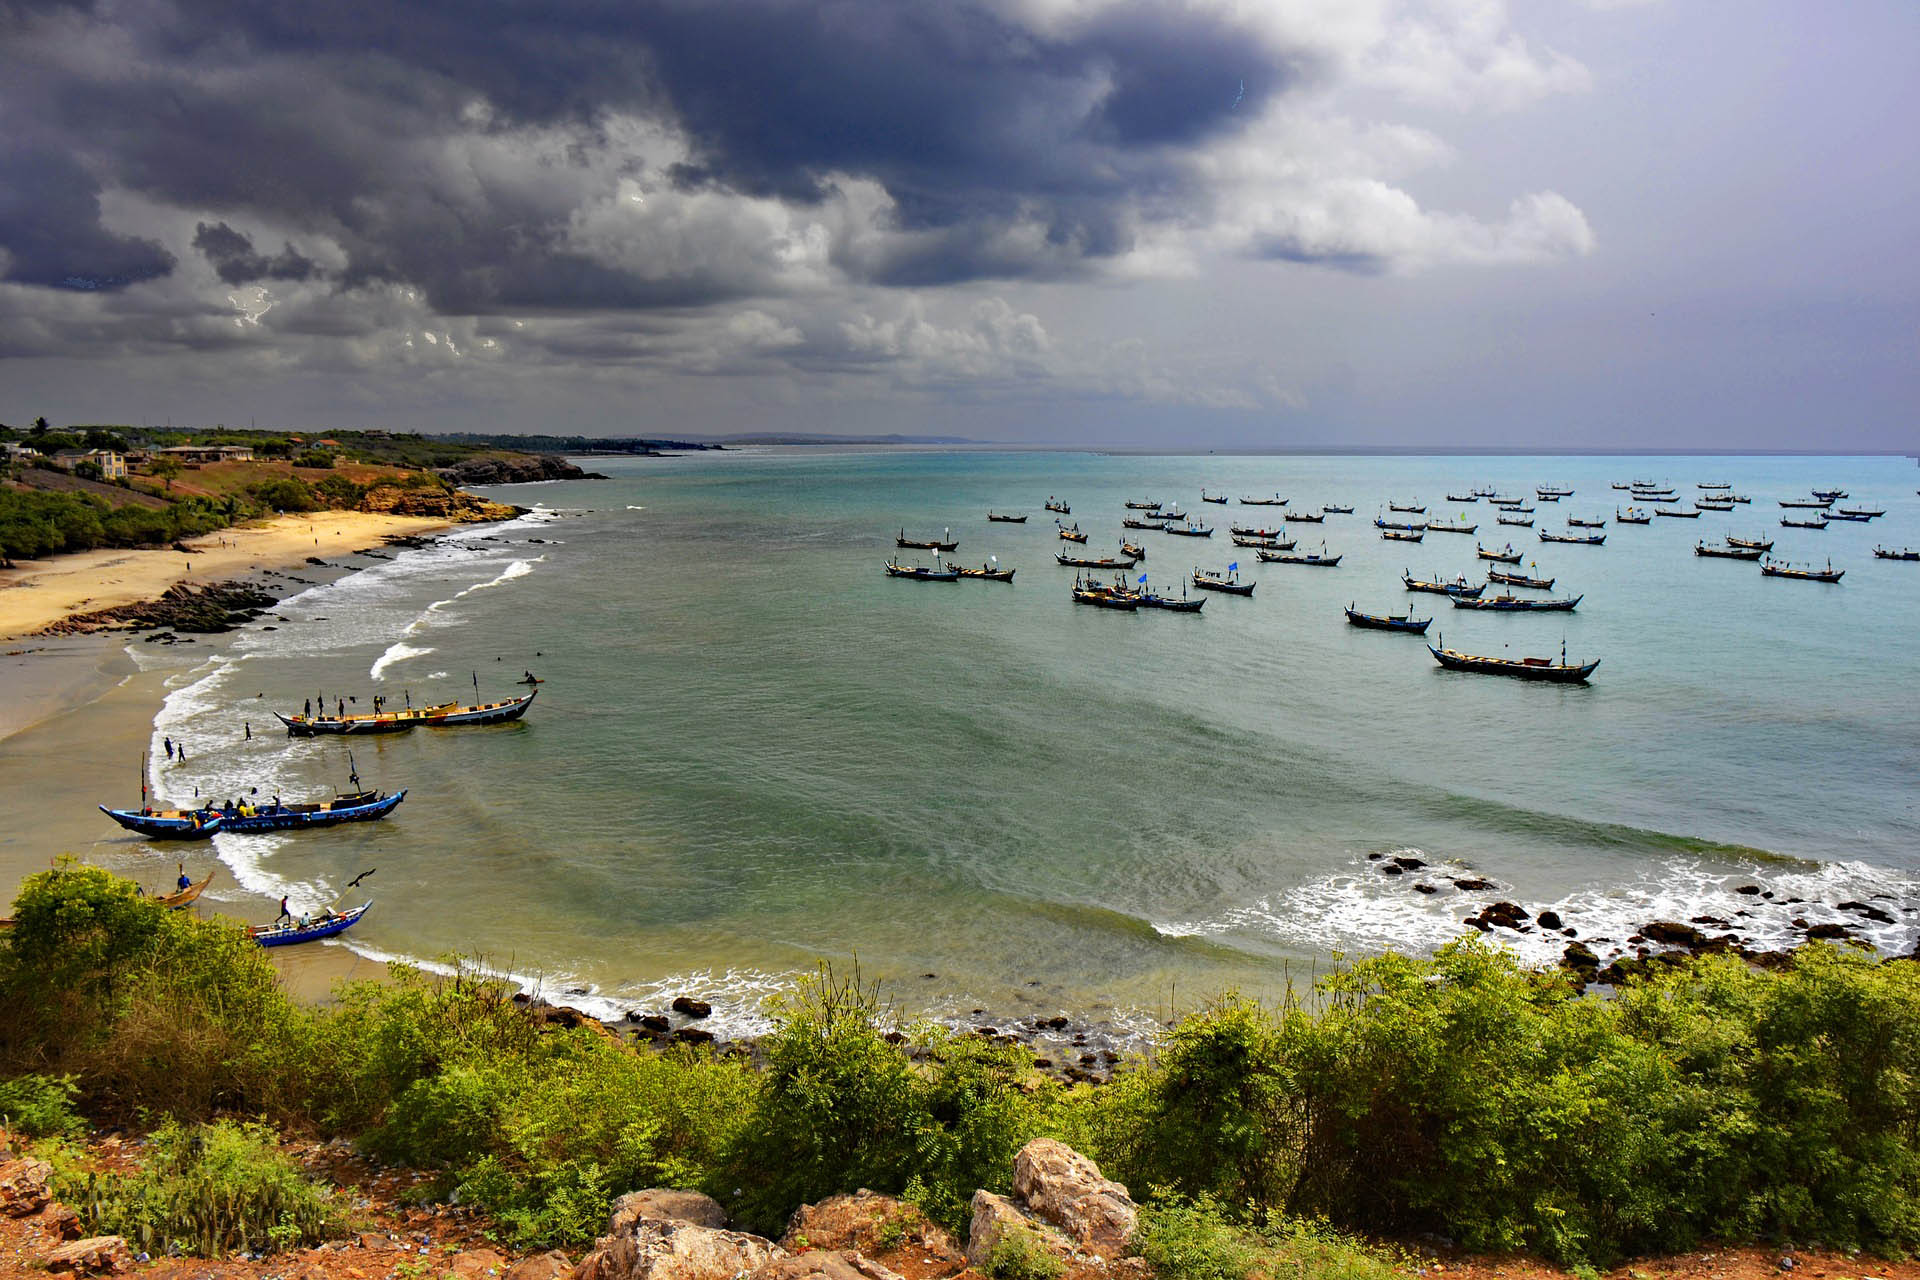 A beach & sea with small boats upon it. A stormy sky appears overhead.